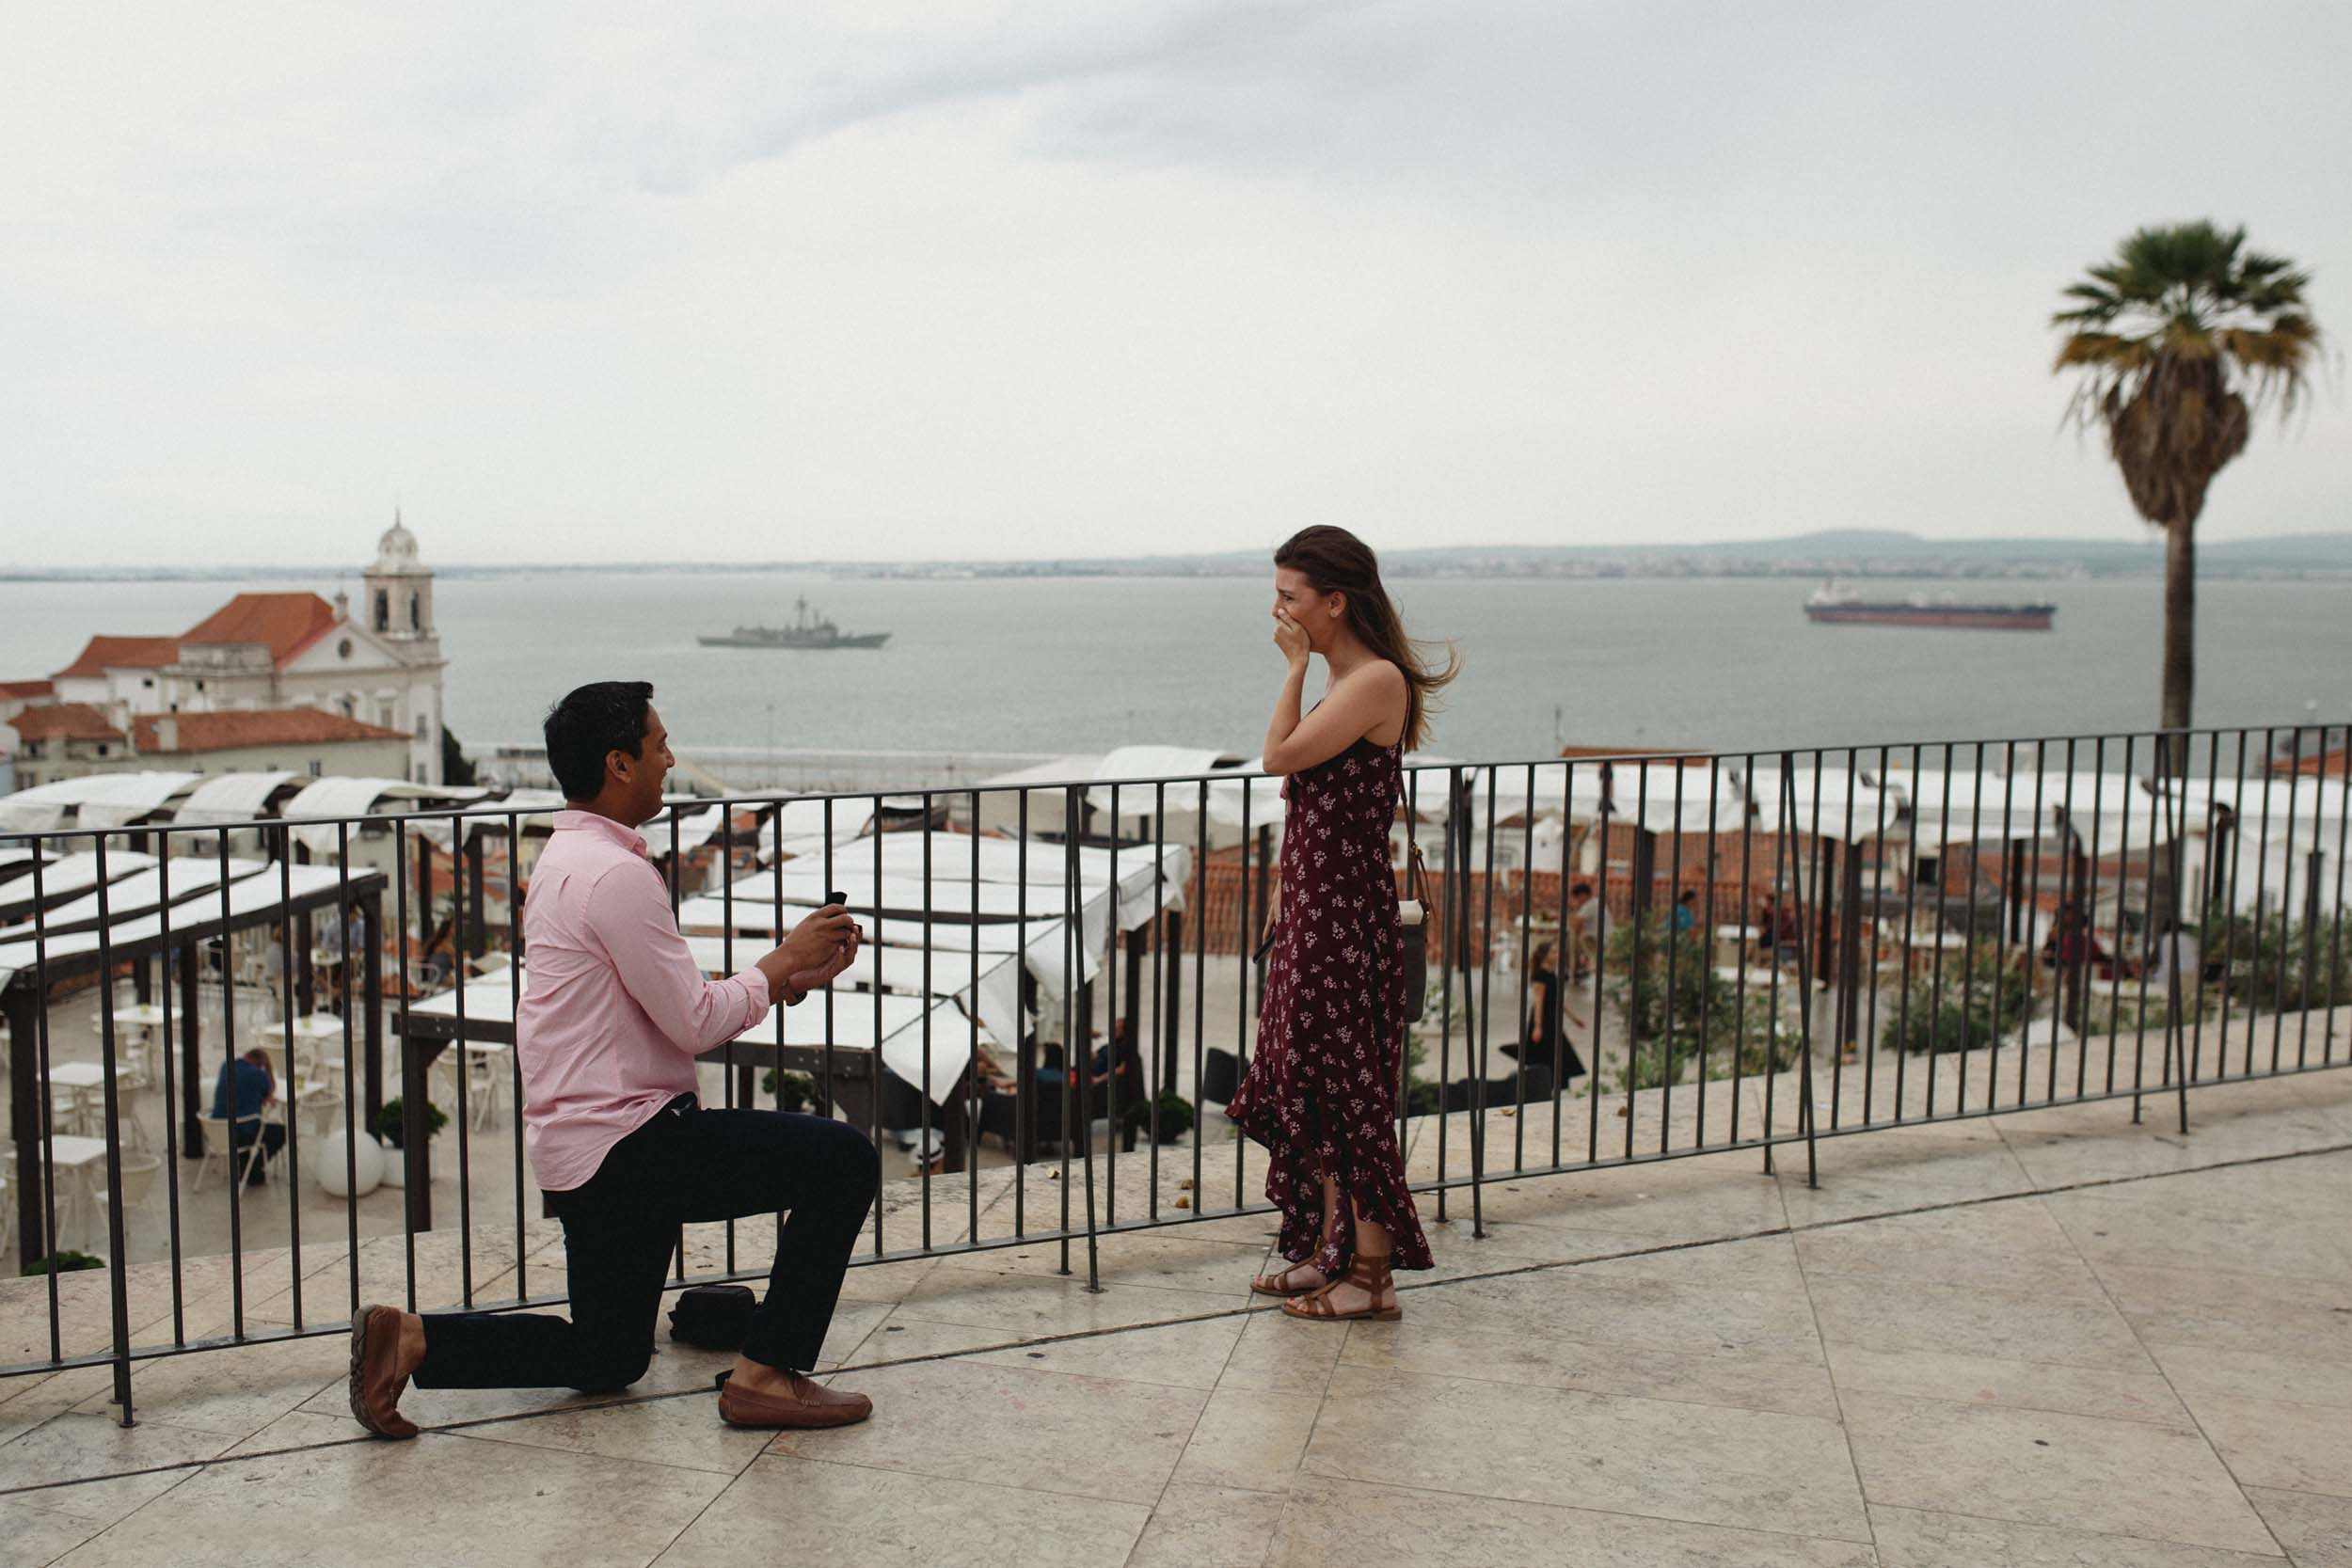 How to Pull Off a Destination Proposal Full of Amazing Surprises – Warning Tissues Needed